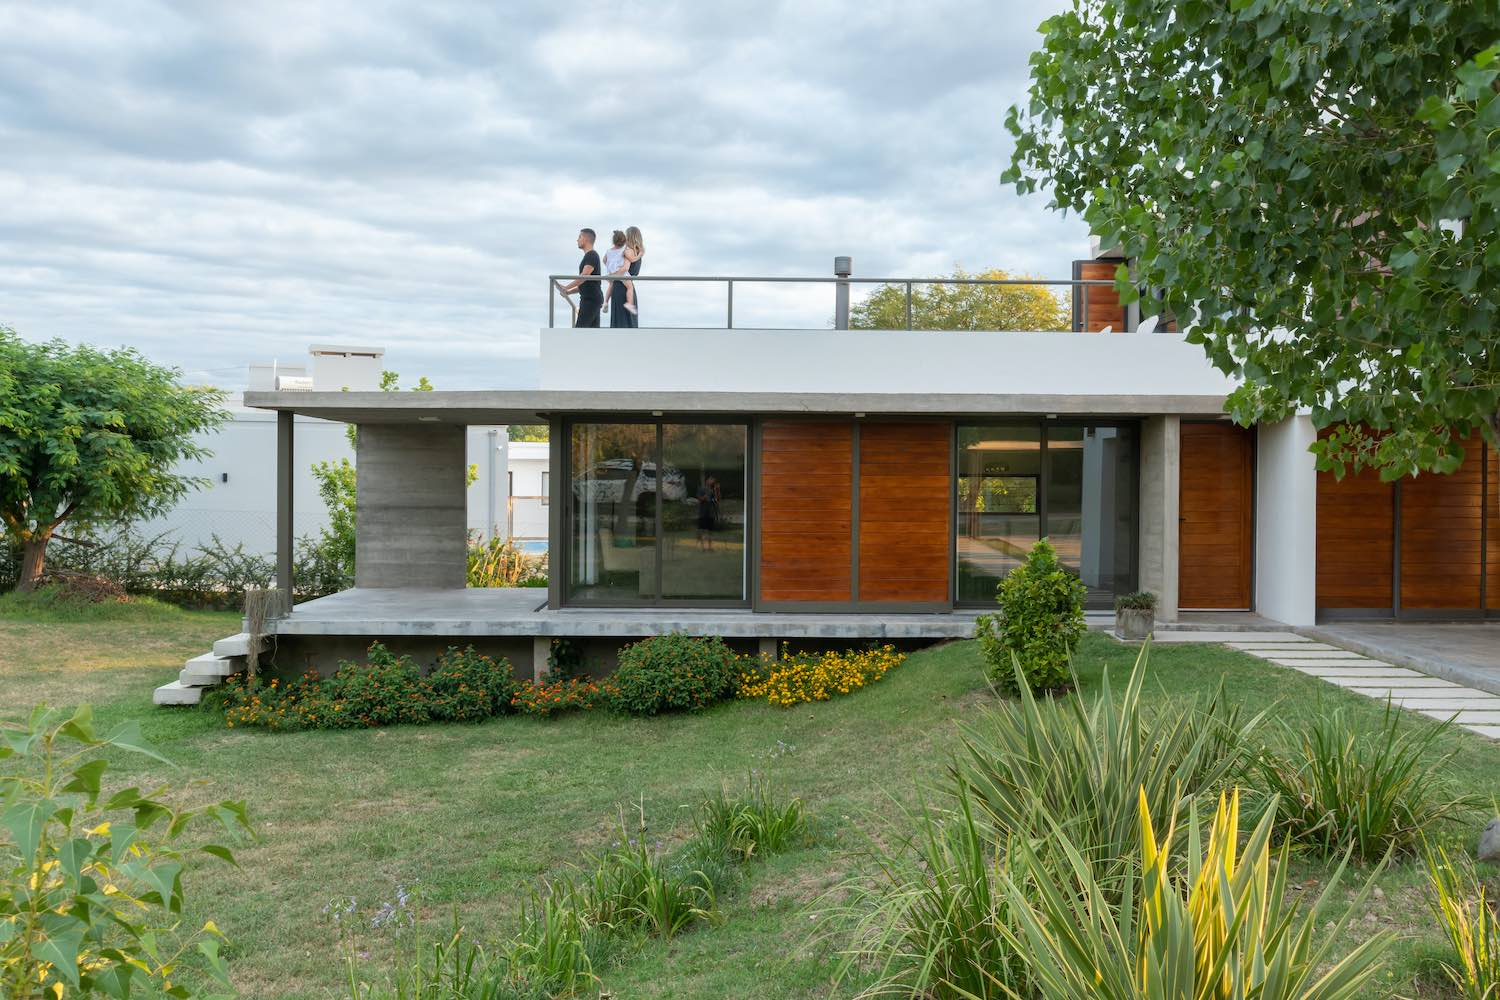 spouse on the roof of the concrete house